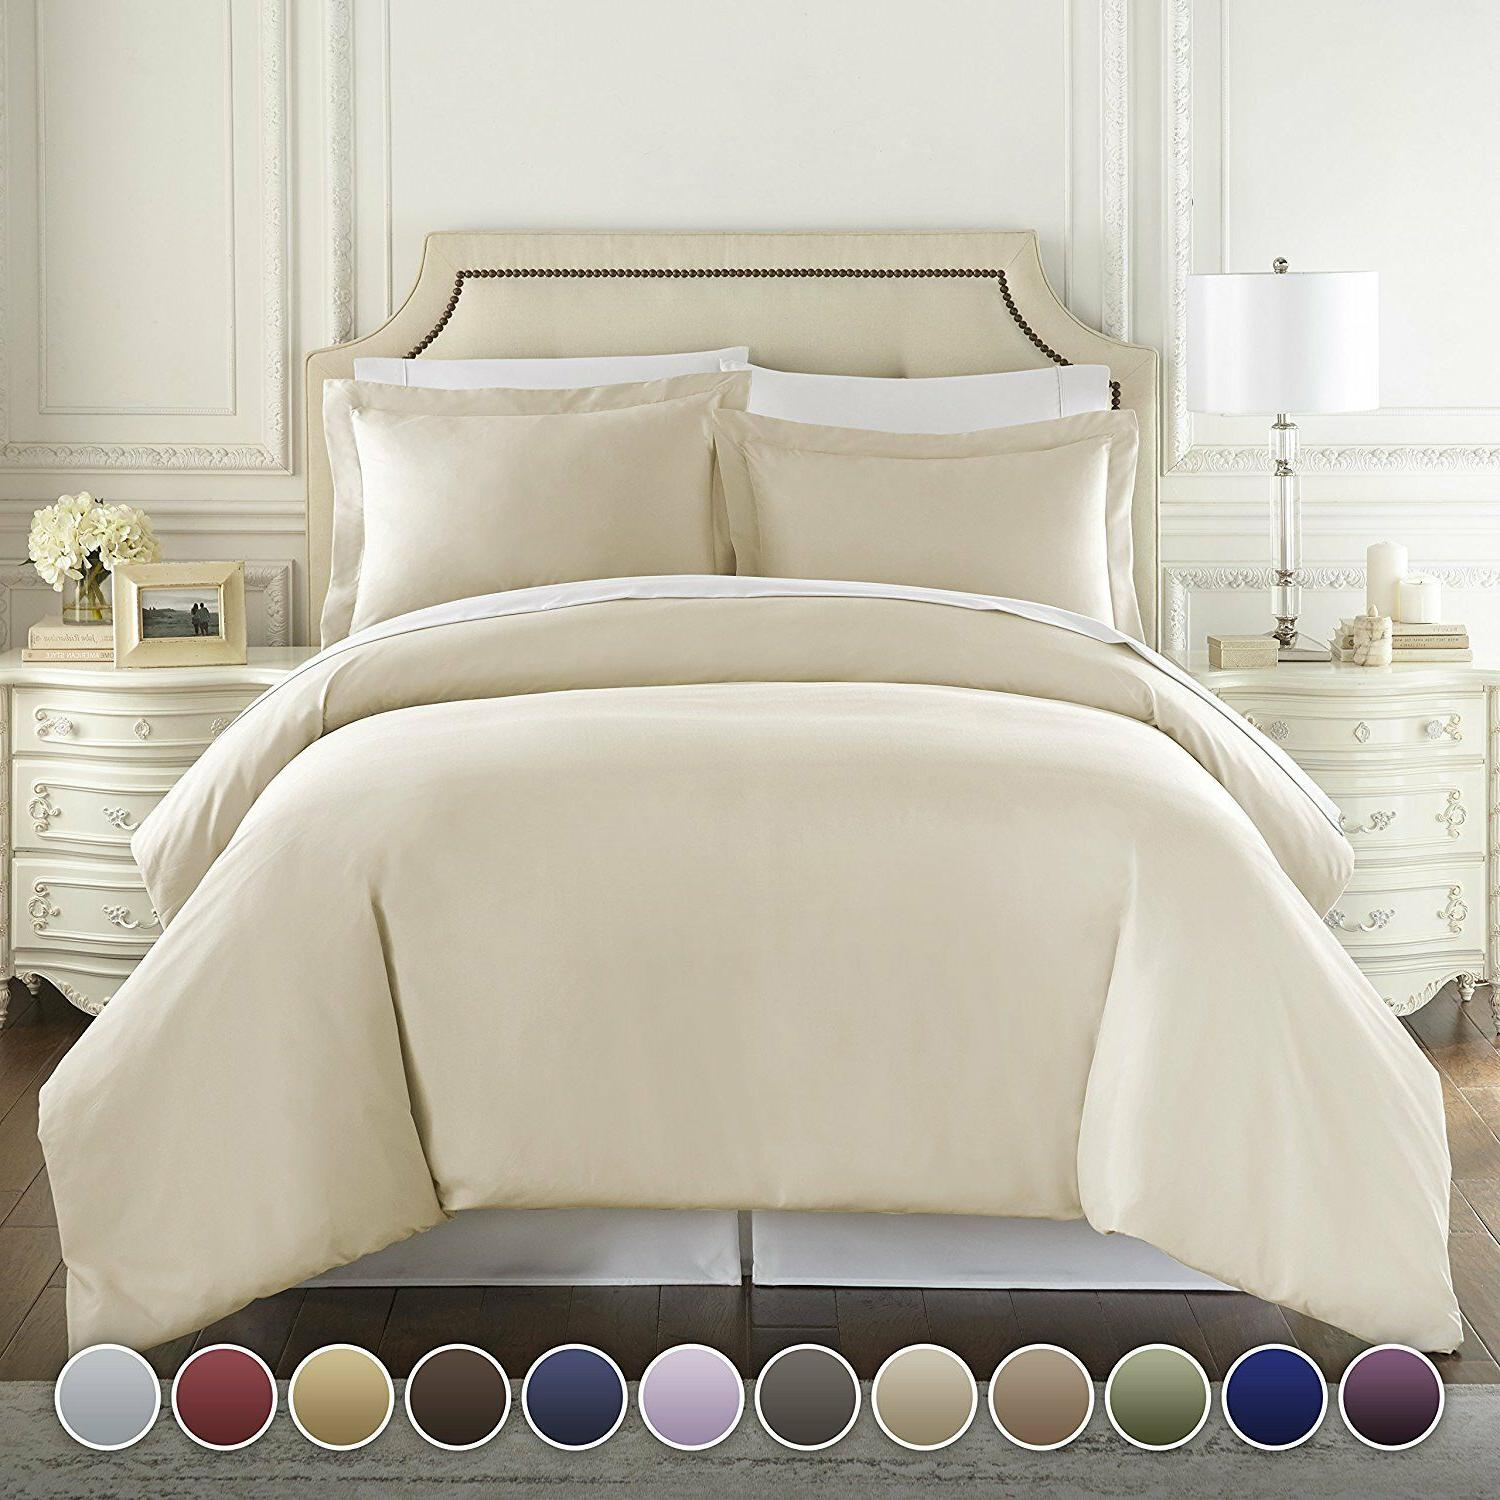 HC COLLECTION Hotel Luxury 3pc Duvet Cover Set-1500Thread Co